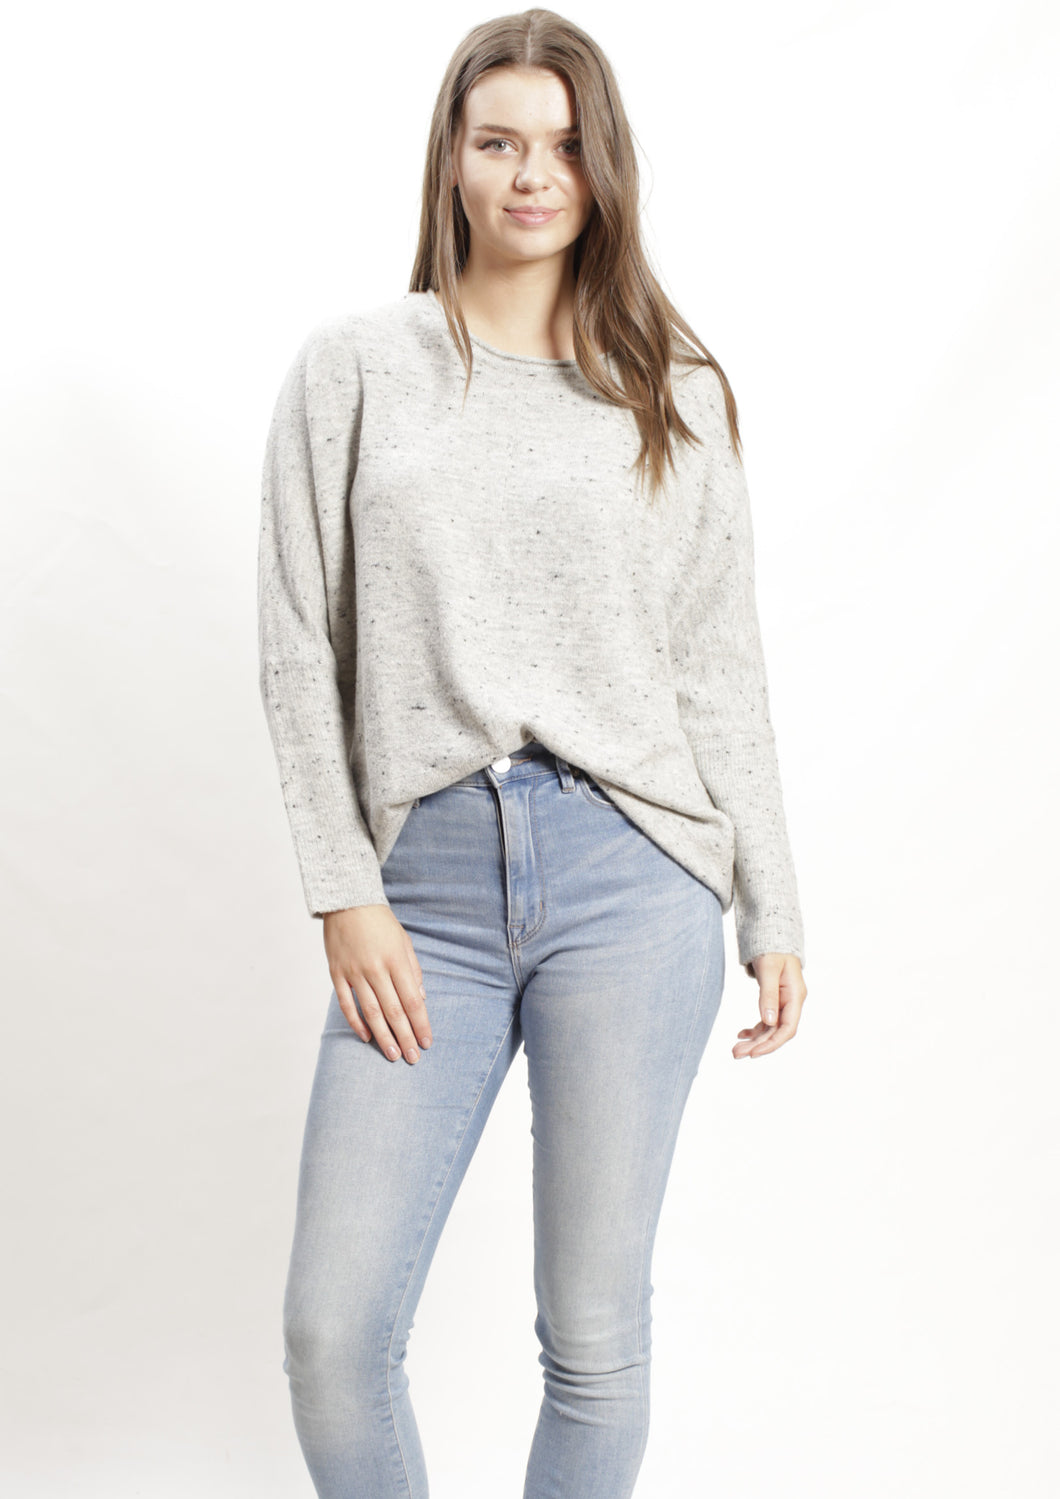 LY1910 Long Sleeve Knit Top (Pack)